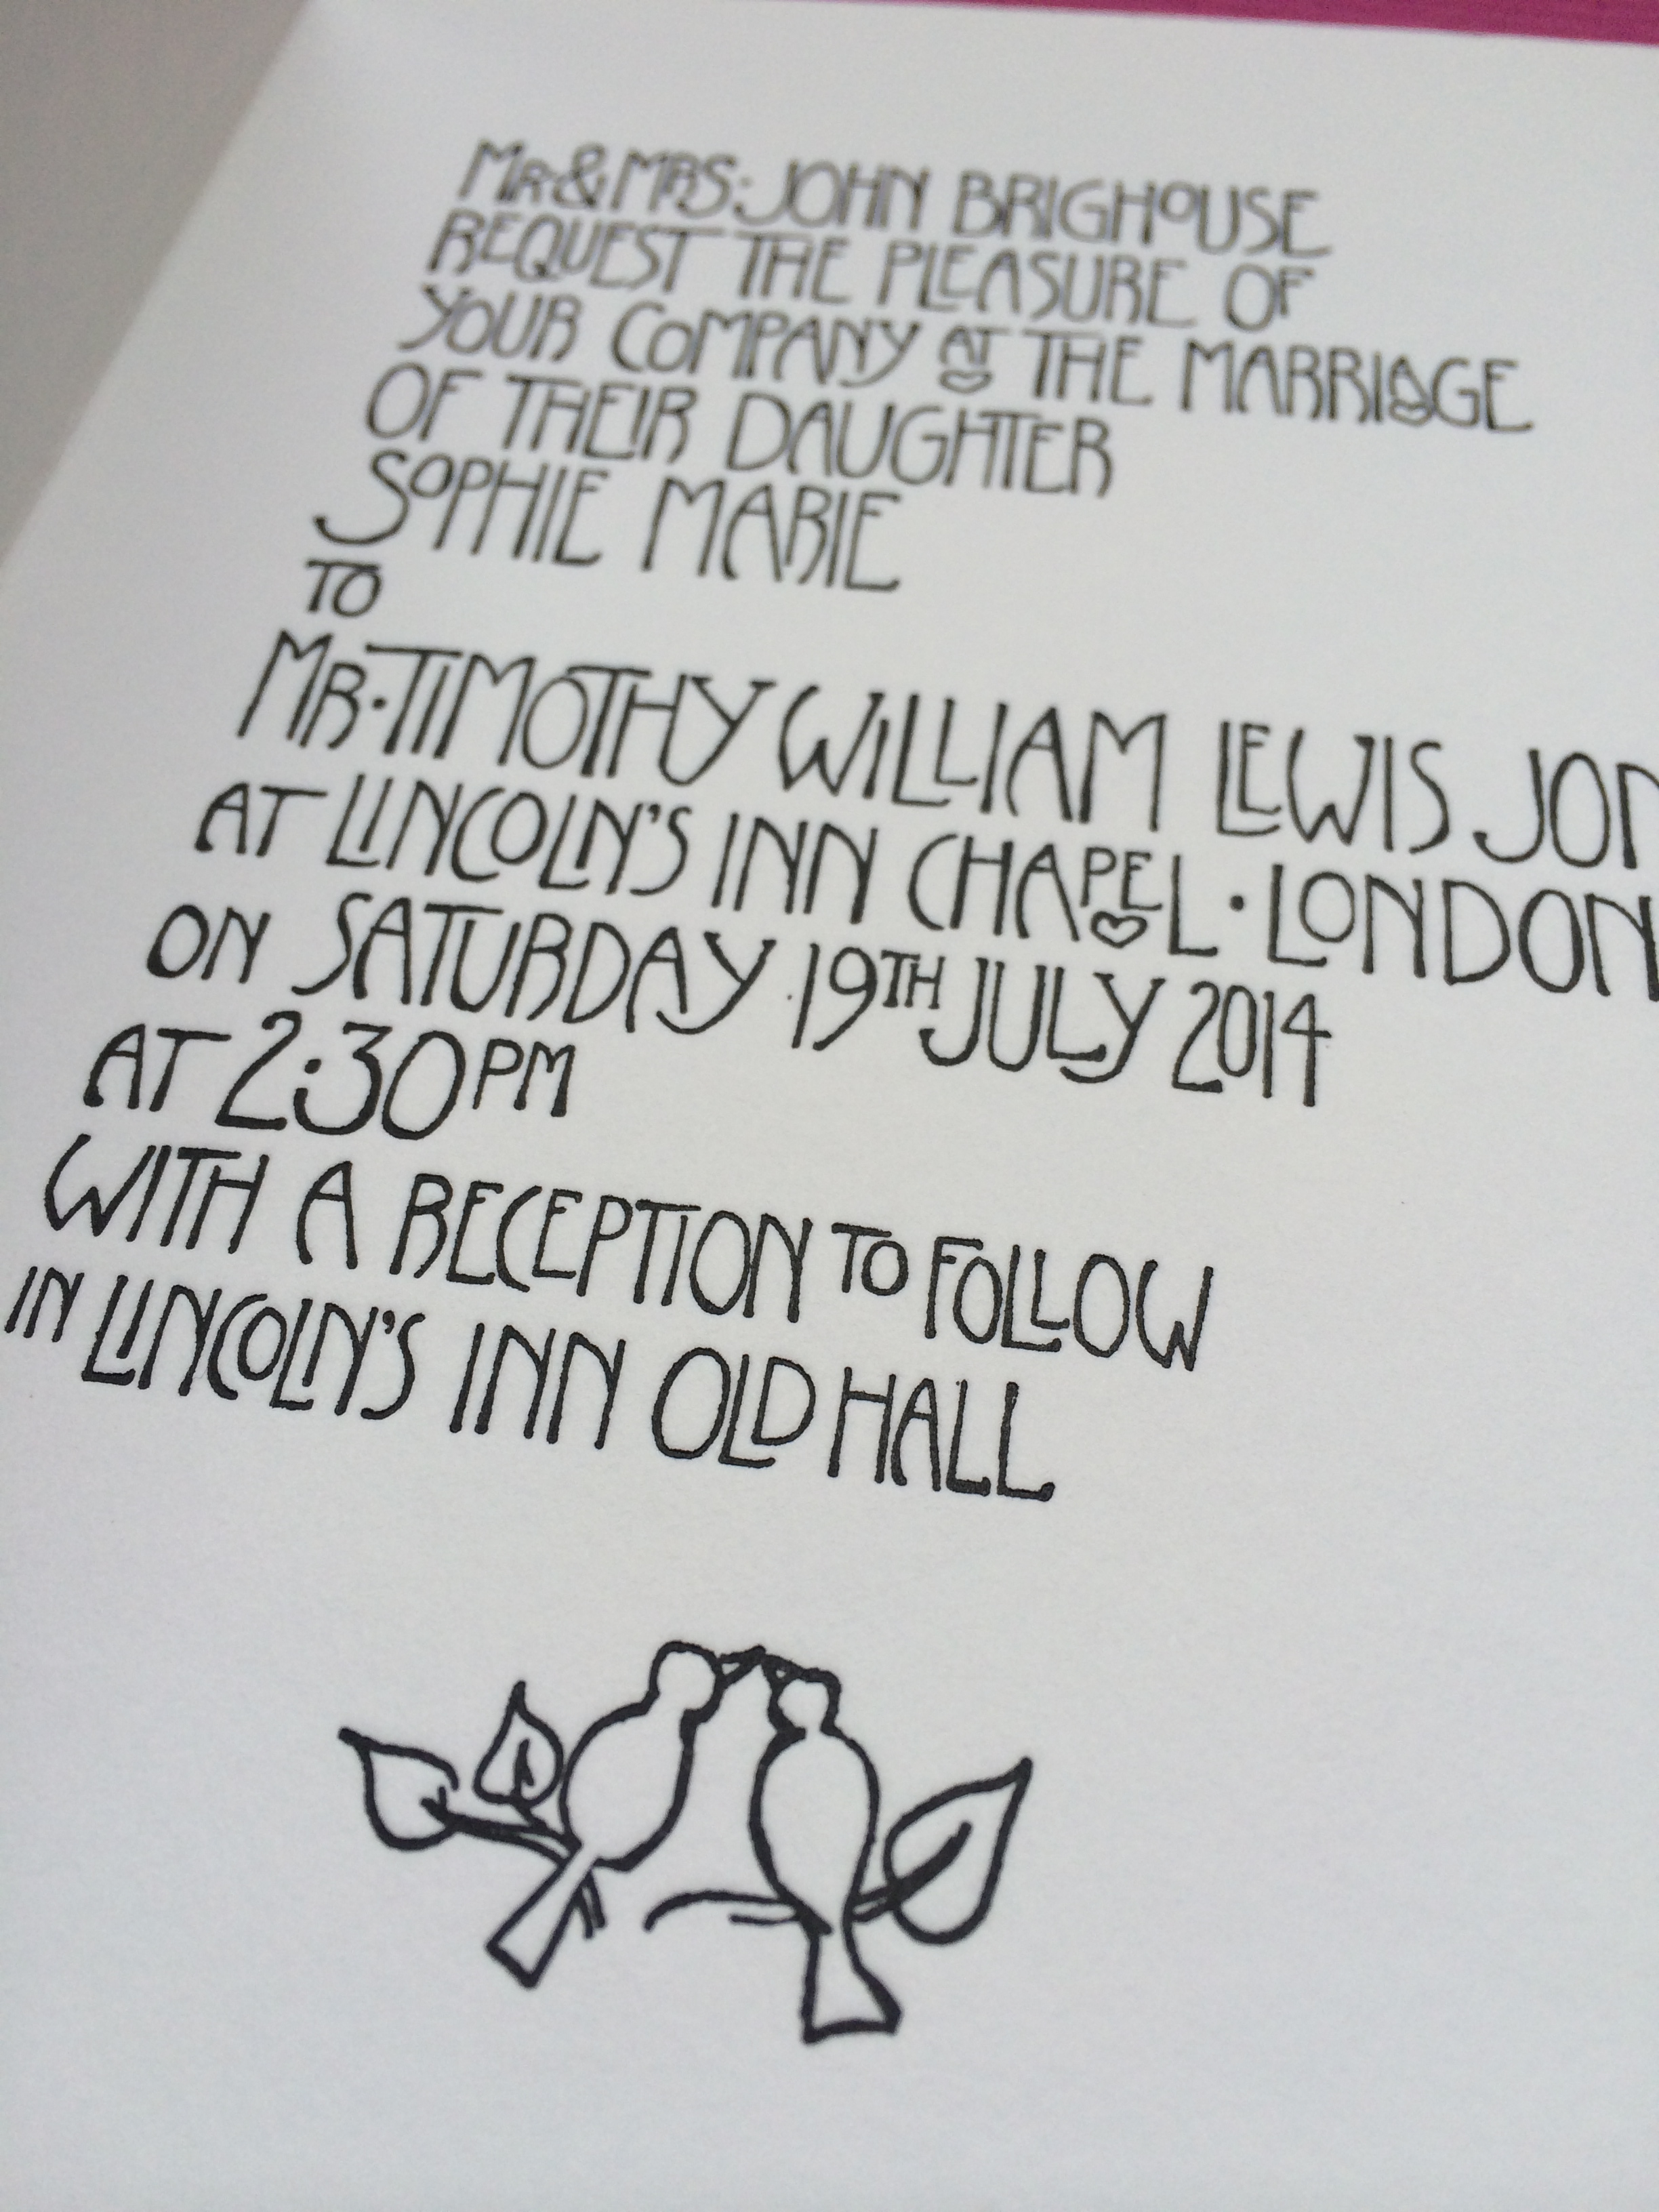 Text inside the main invite